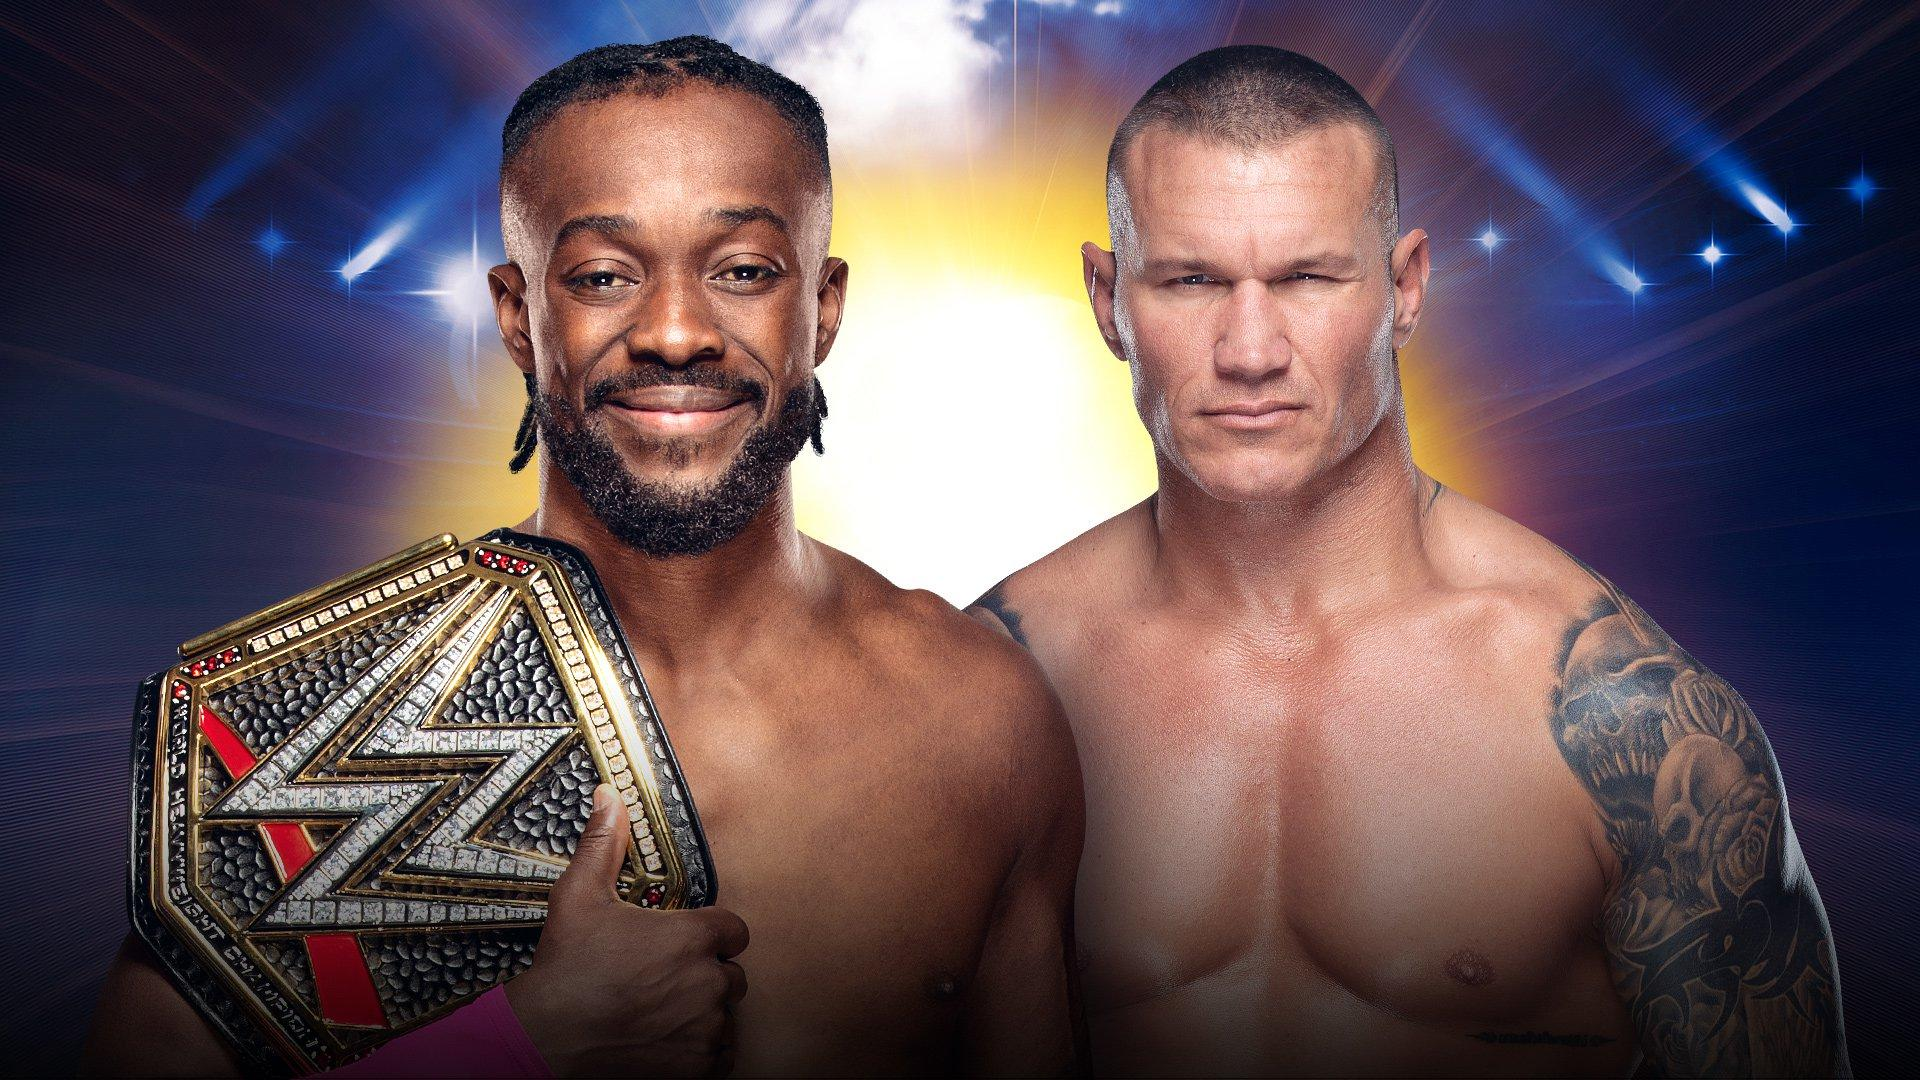 WWE Champion Kofi Kingston vs Randy Orton